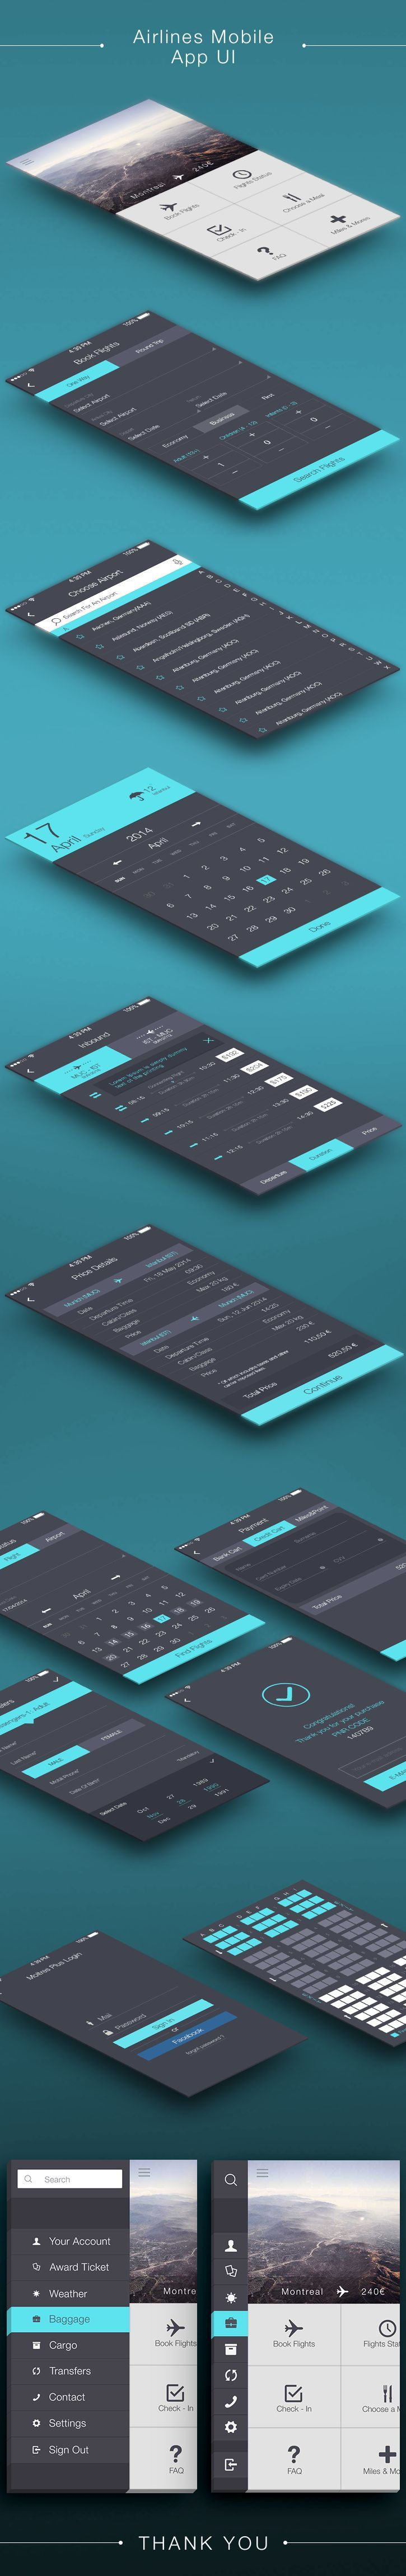 Airlines mobile app ui